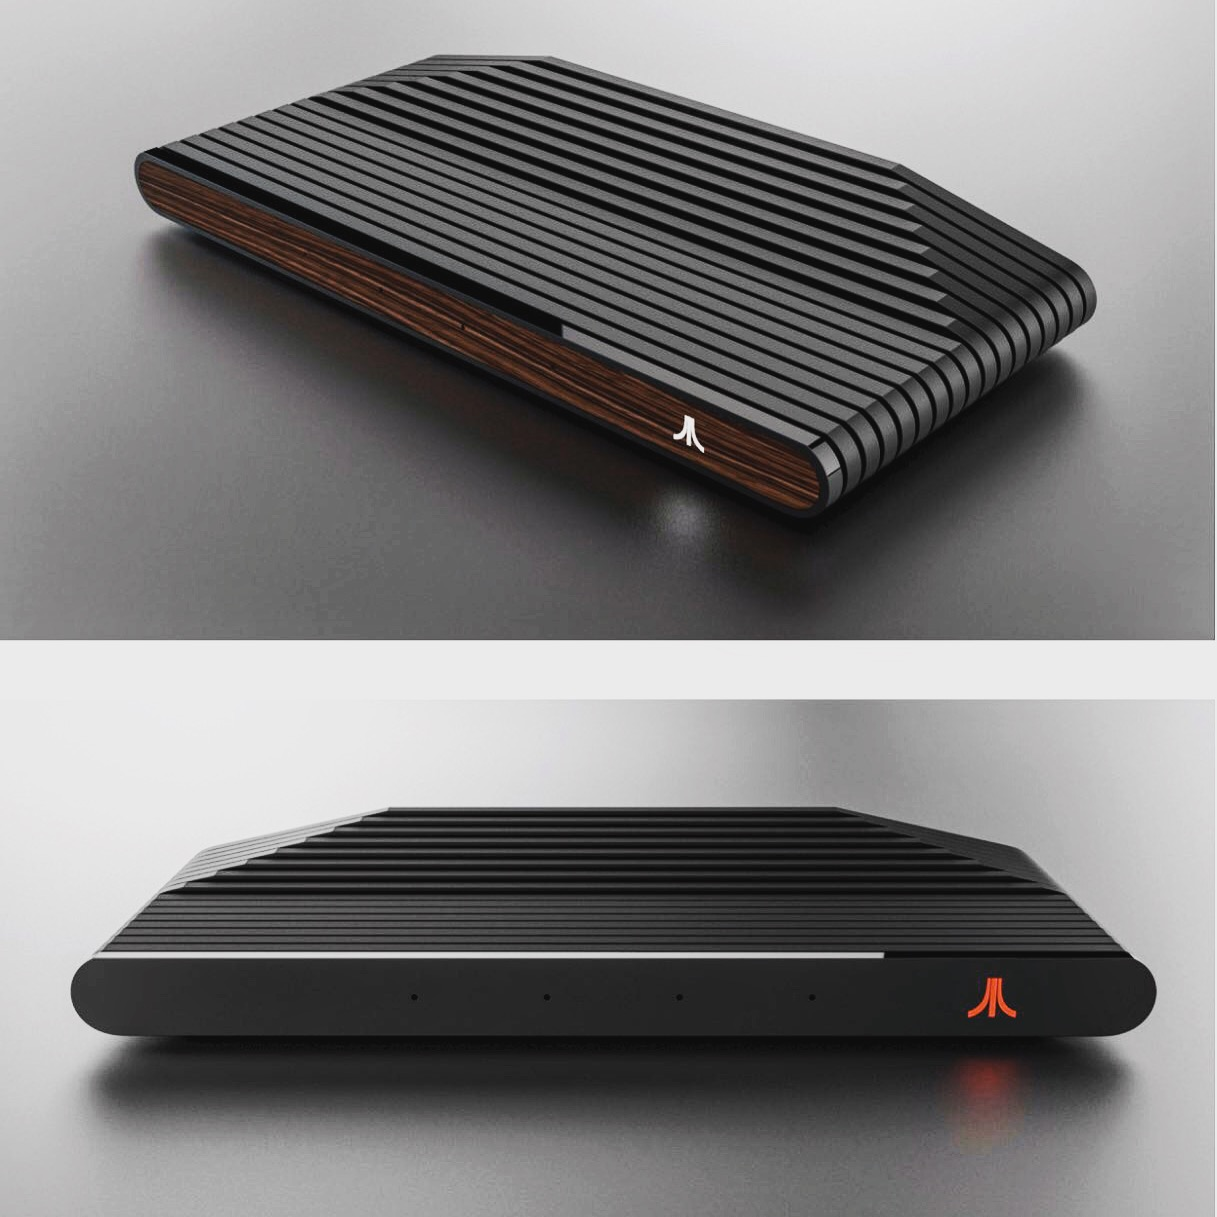 Ataribox Wooden and Read And Black Console